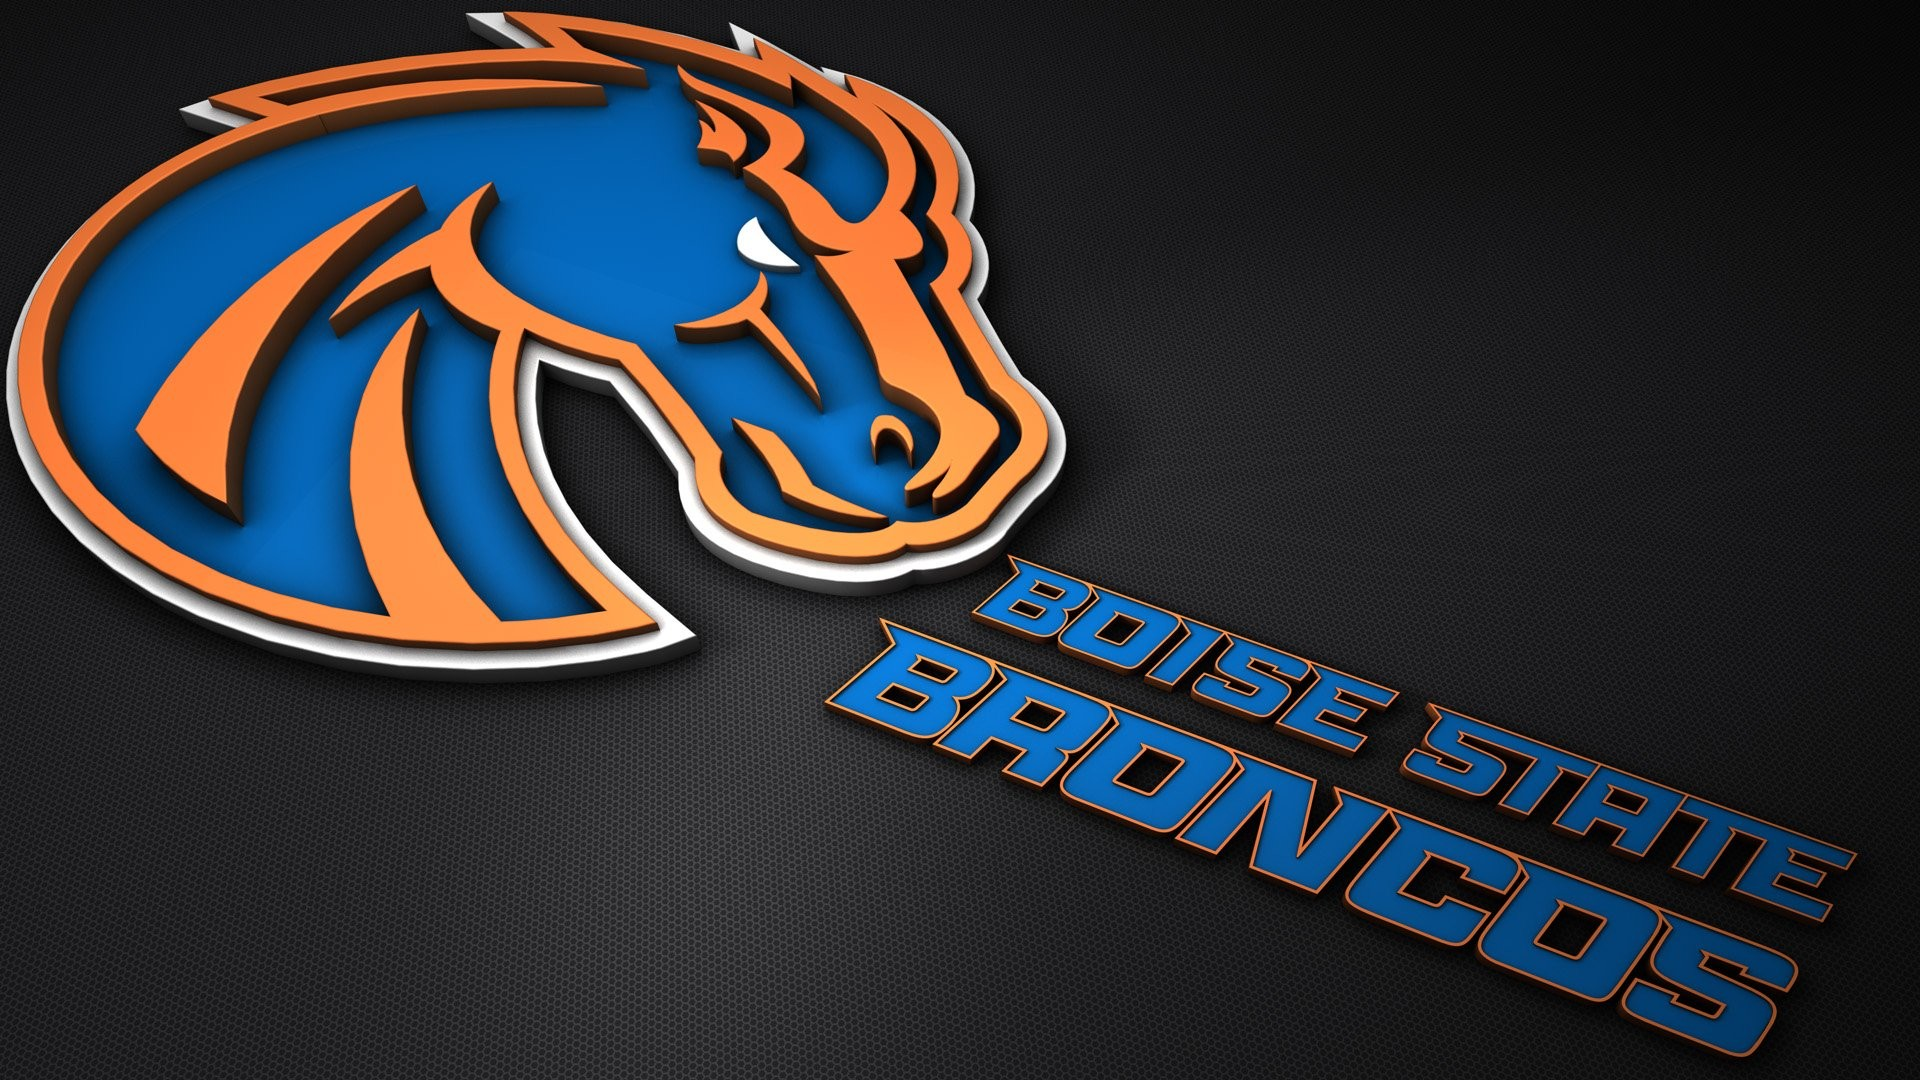 Boise State Broncos Football Wallpapers: Denver Broncos Wallpaper Screensavers (69+ Images